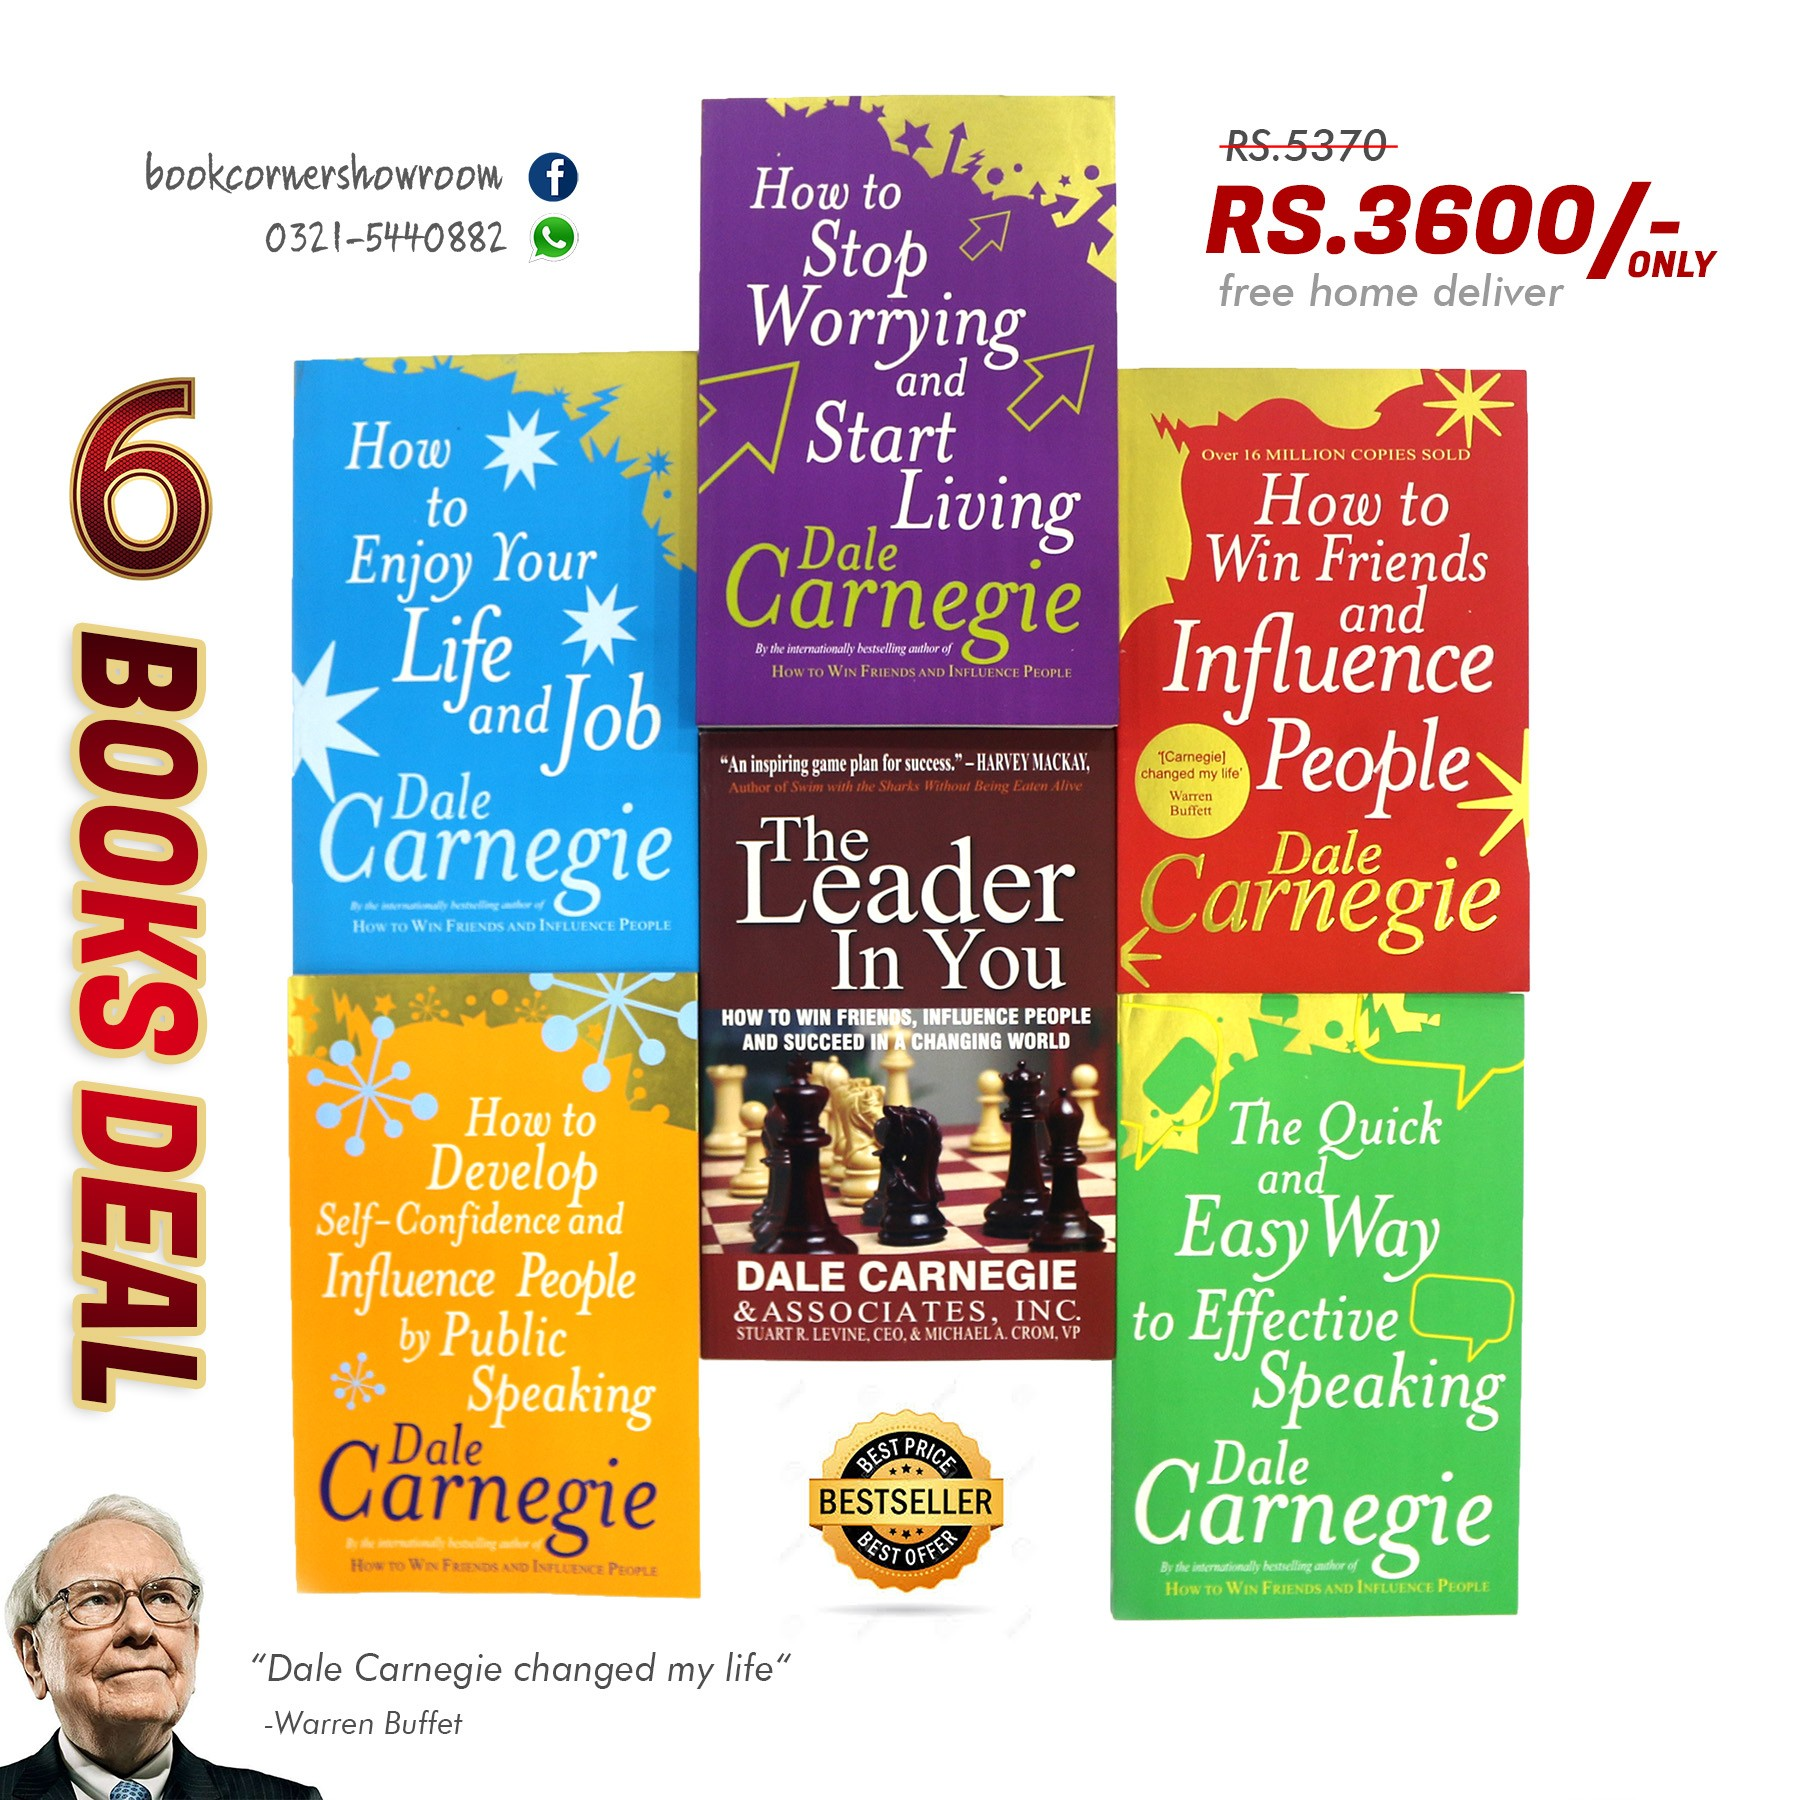 HOW TO ENJOY YOUR LIFE WITH DALE CARNEGIE - 6 BOOKS PACK